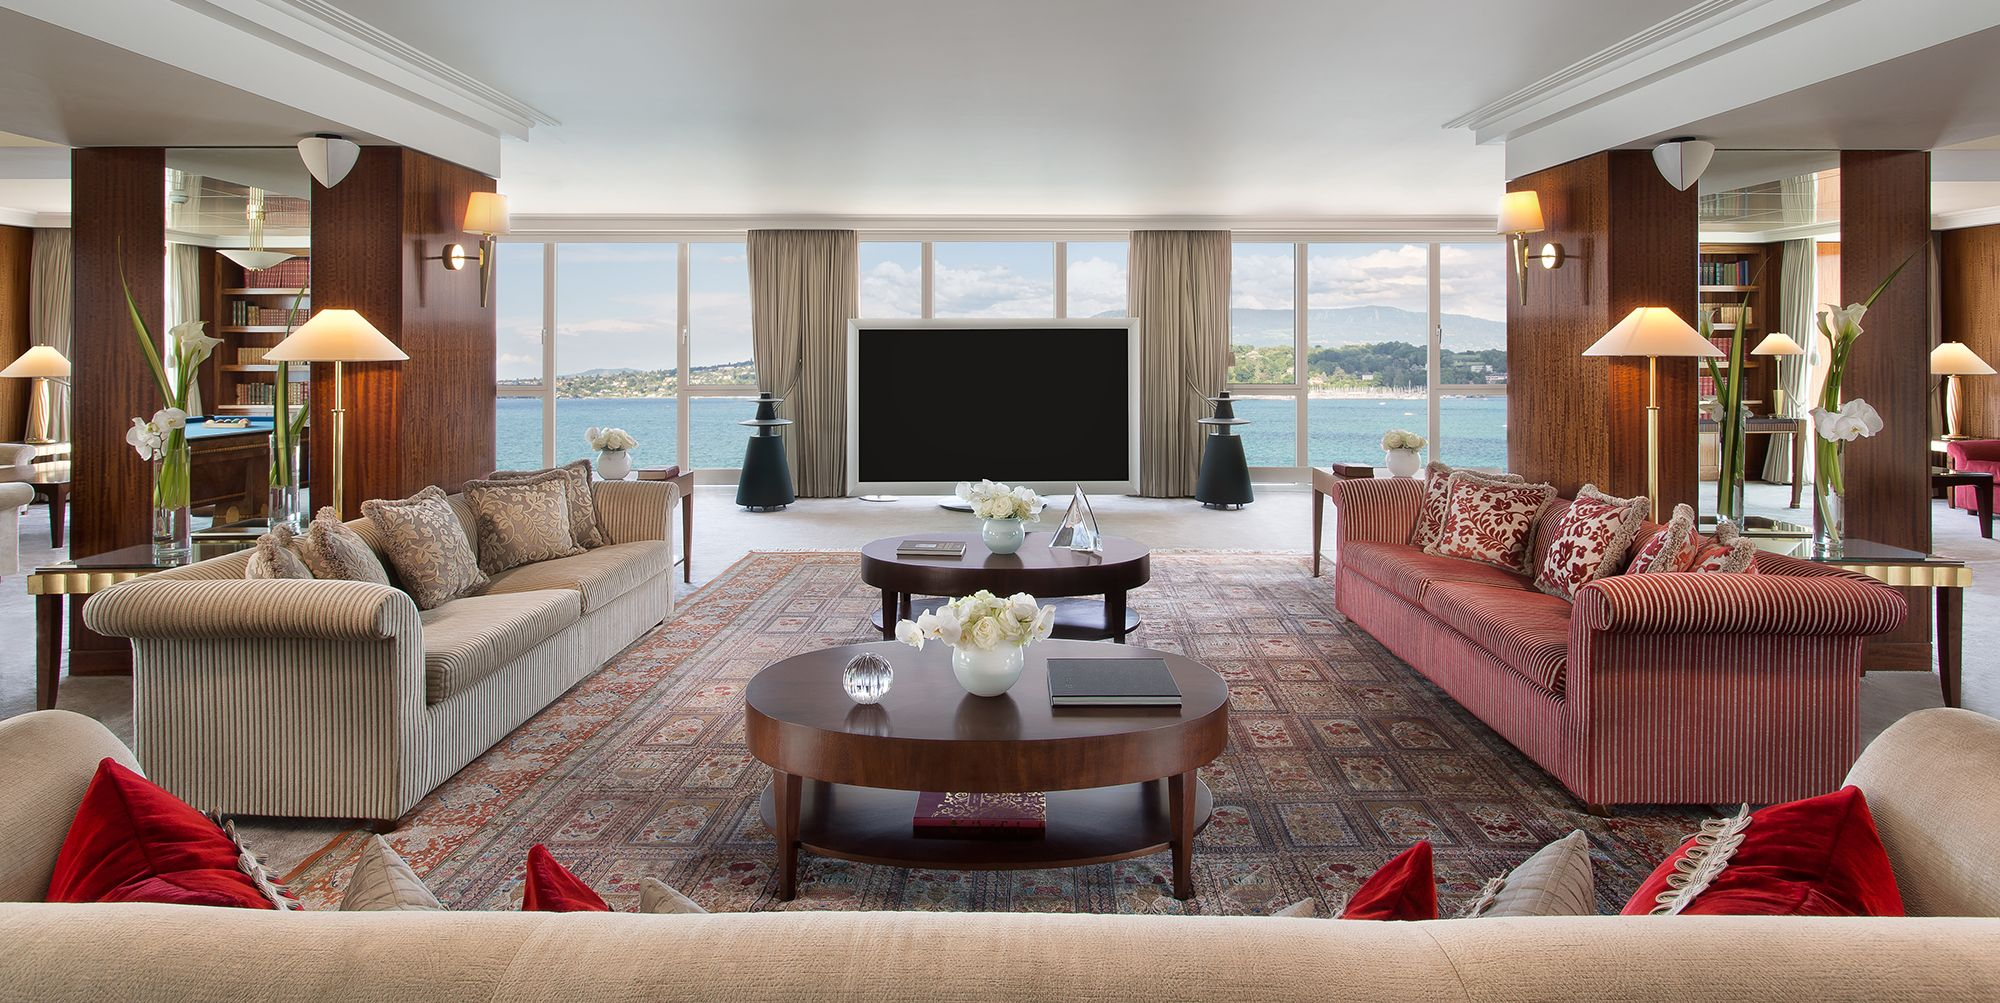 What's It's Like to Stay in the Most Expensive Hotel Suite in the World